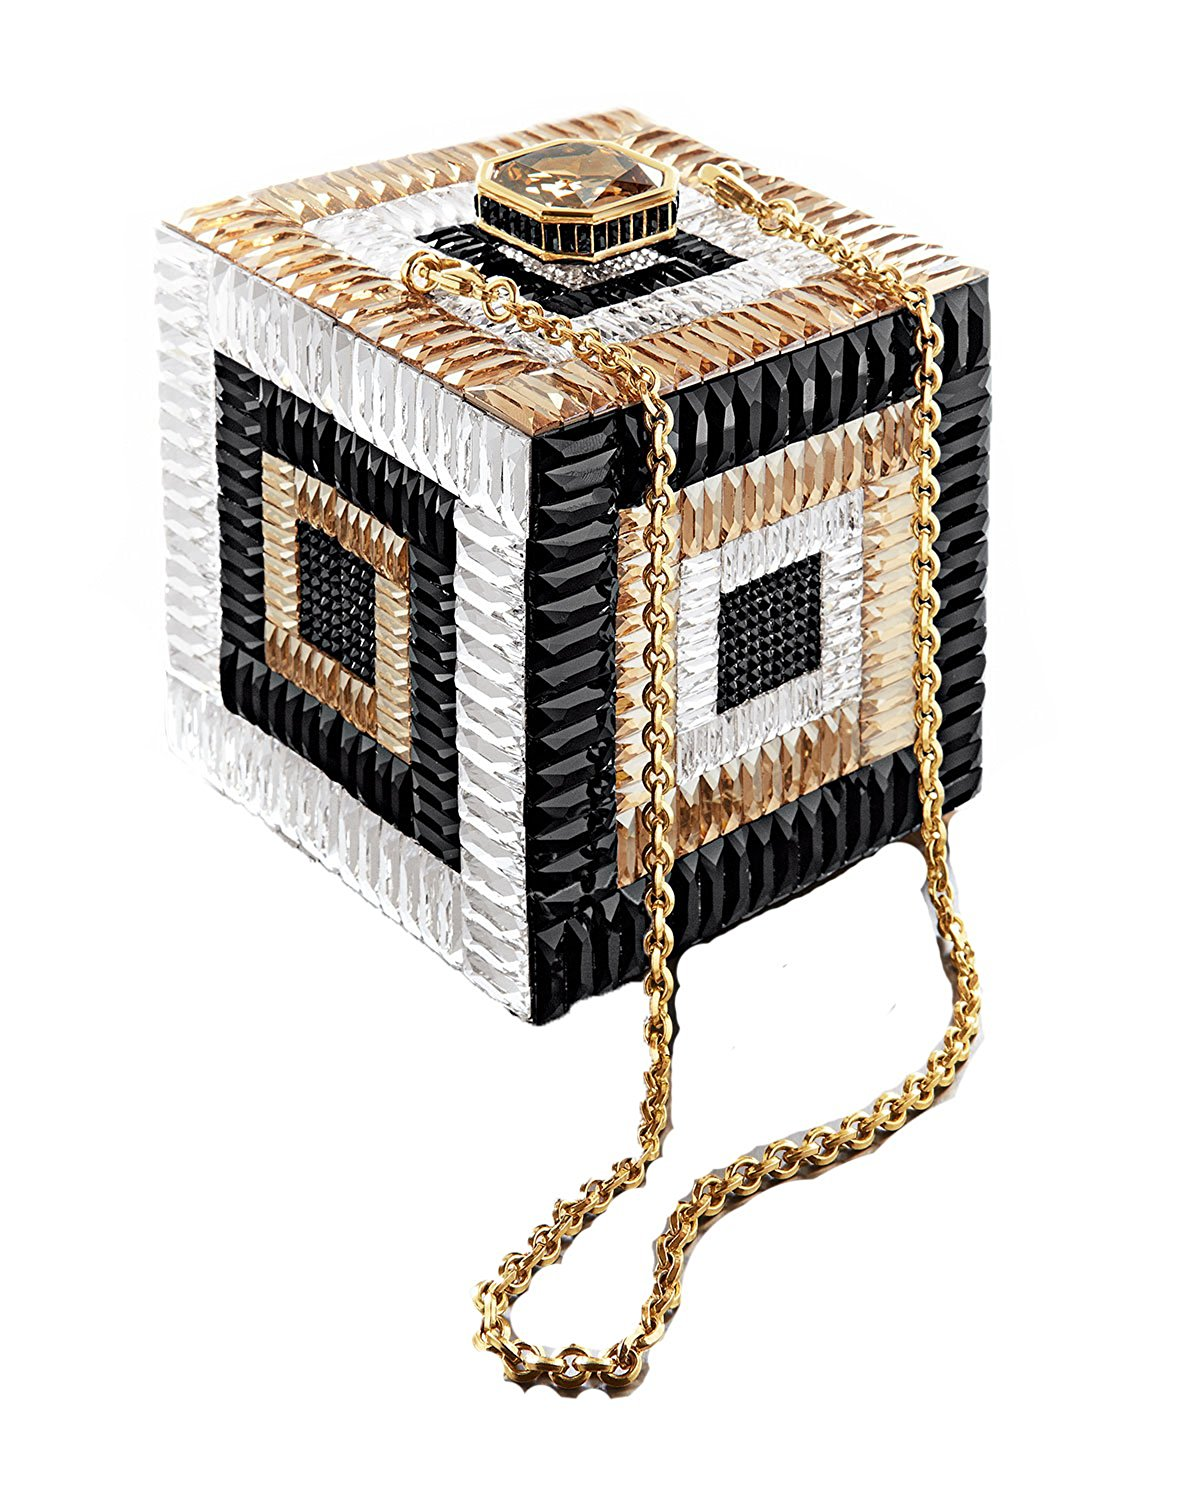 The same price as a really expensive piece of jewelry, this is a keeper for generations! Judith Leiber Couture Cube Be Square Crystal Clutch, $3,200 @amazon.com